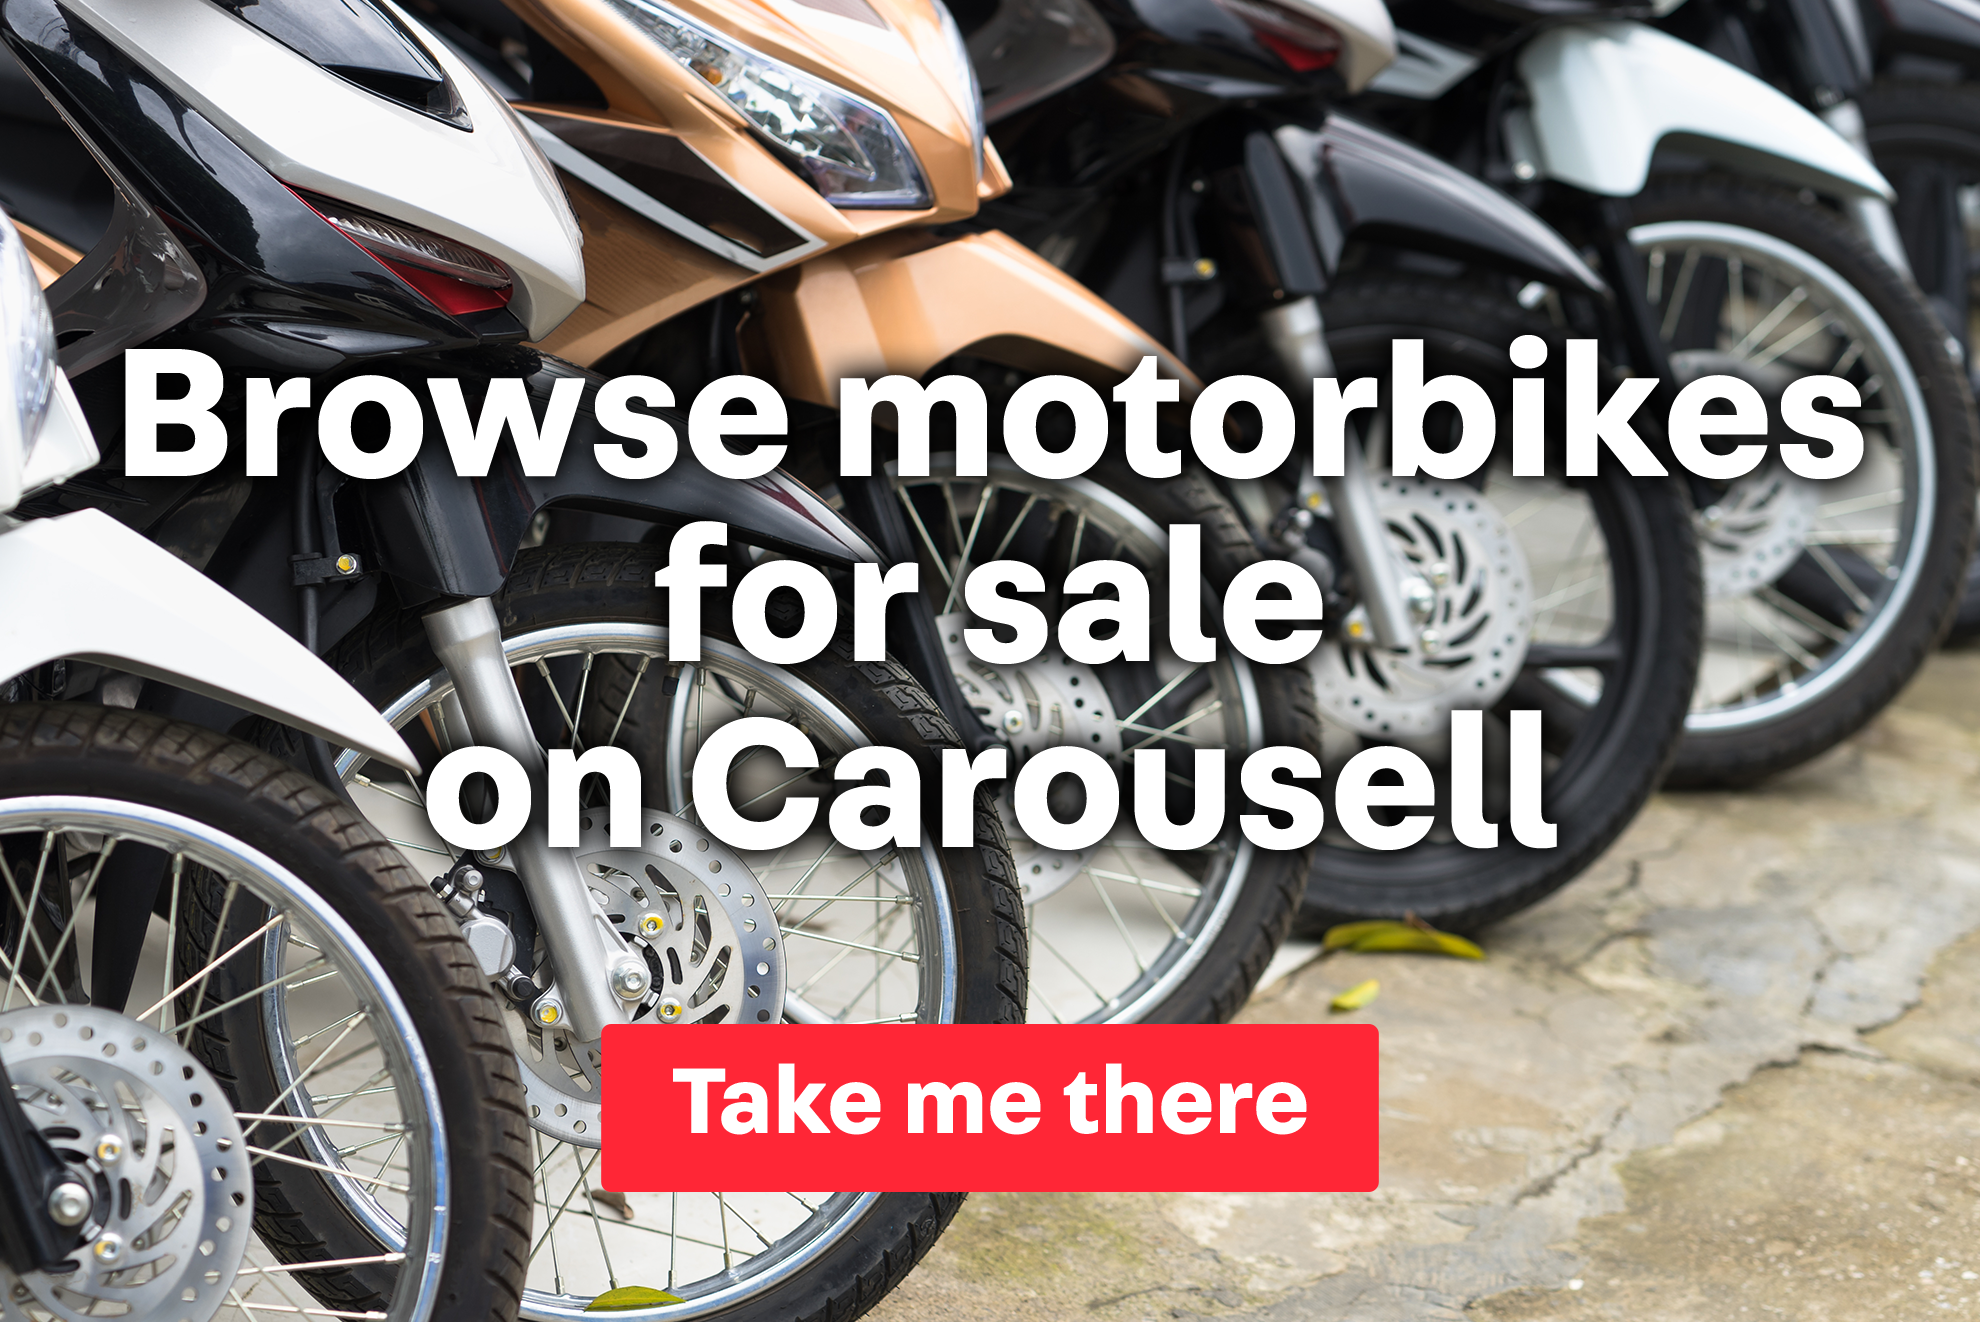 Find new and used motorbikes on Carousell